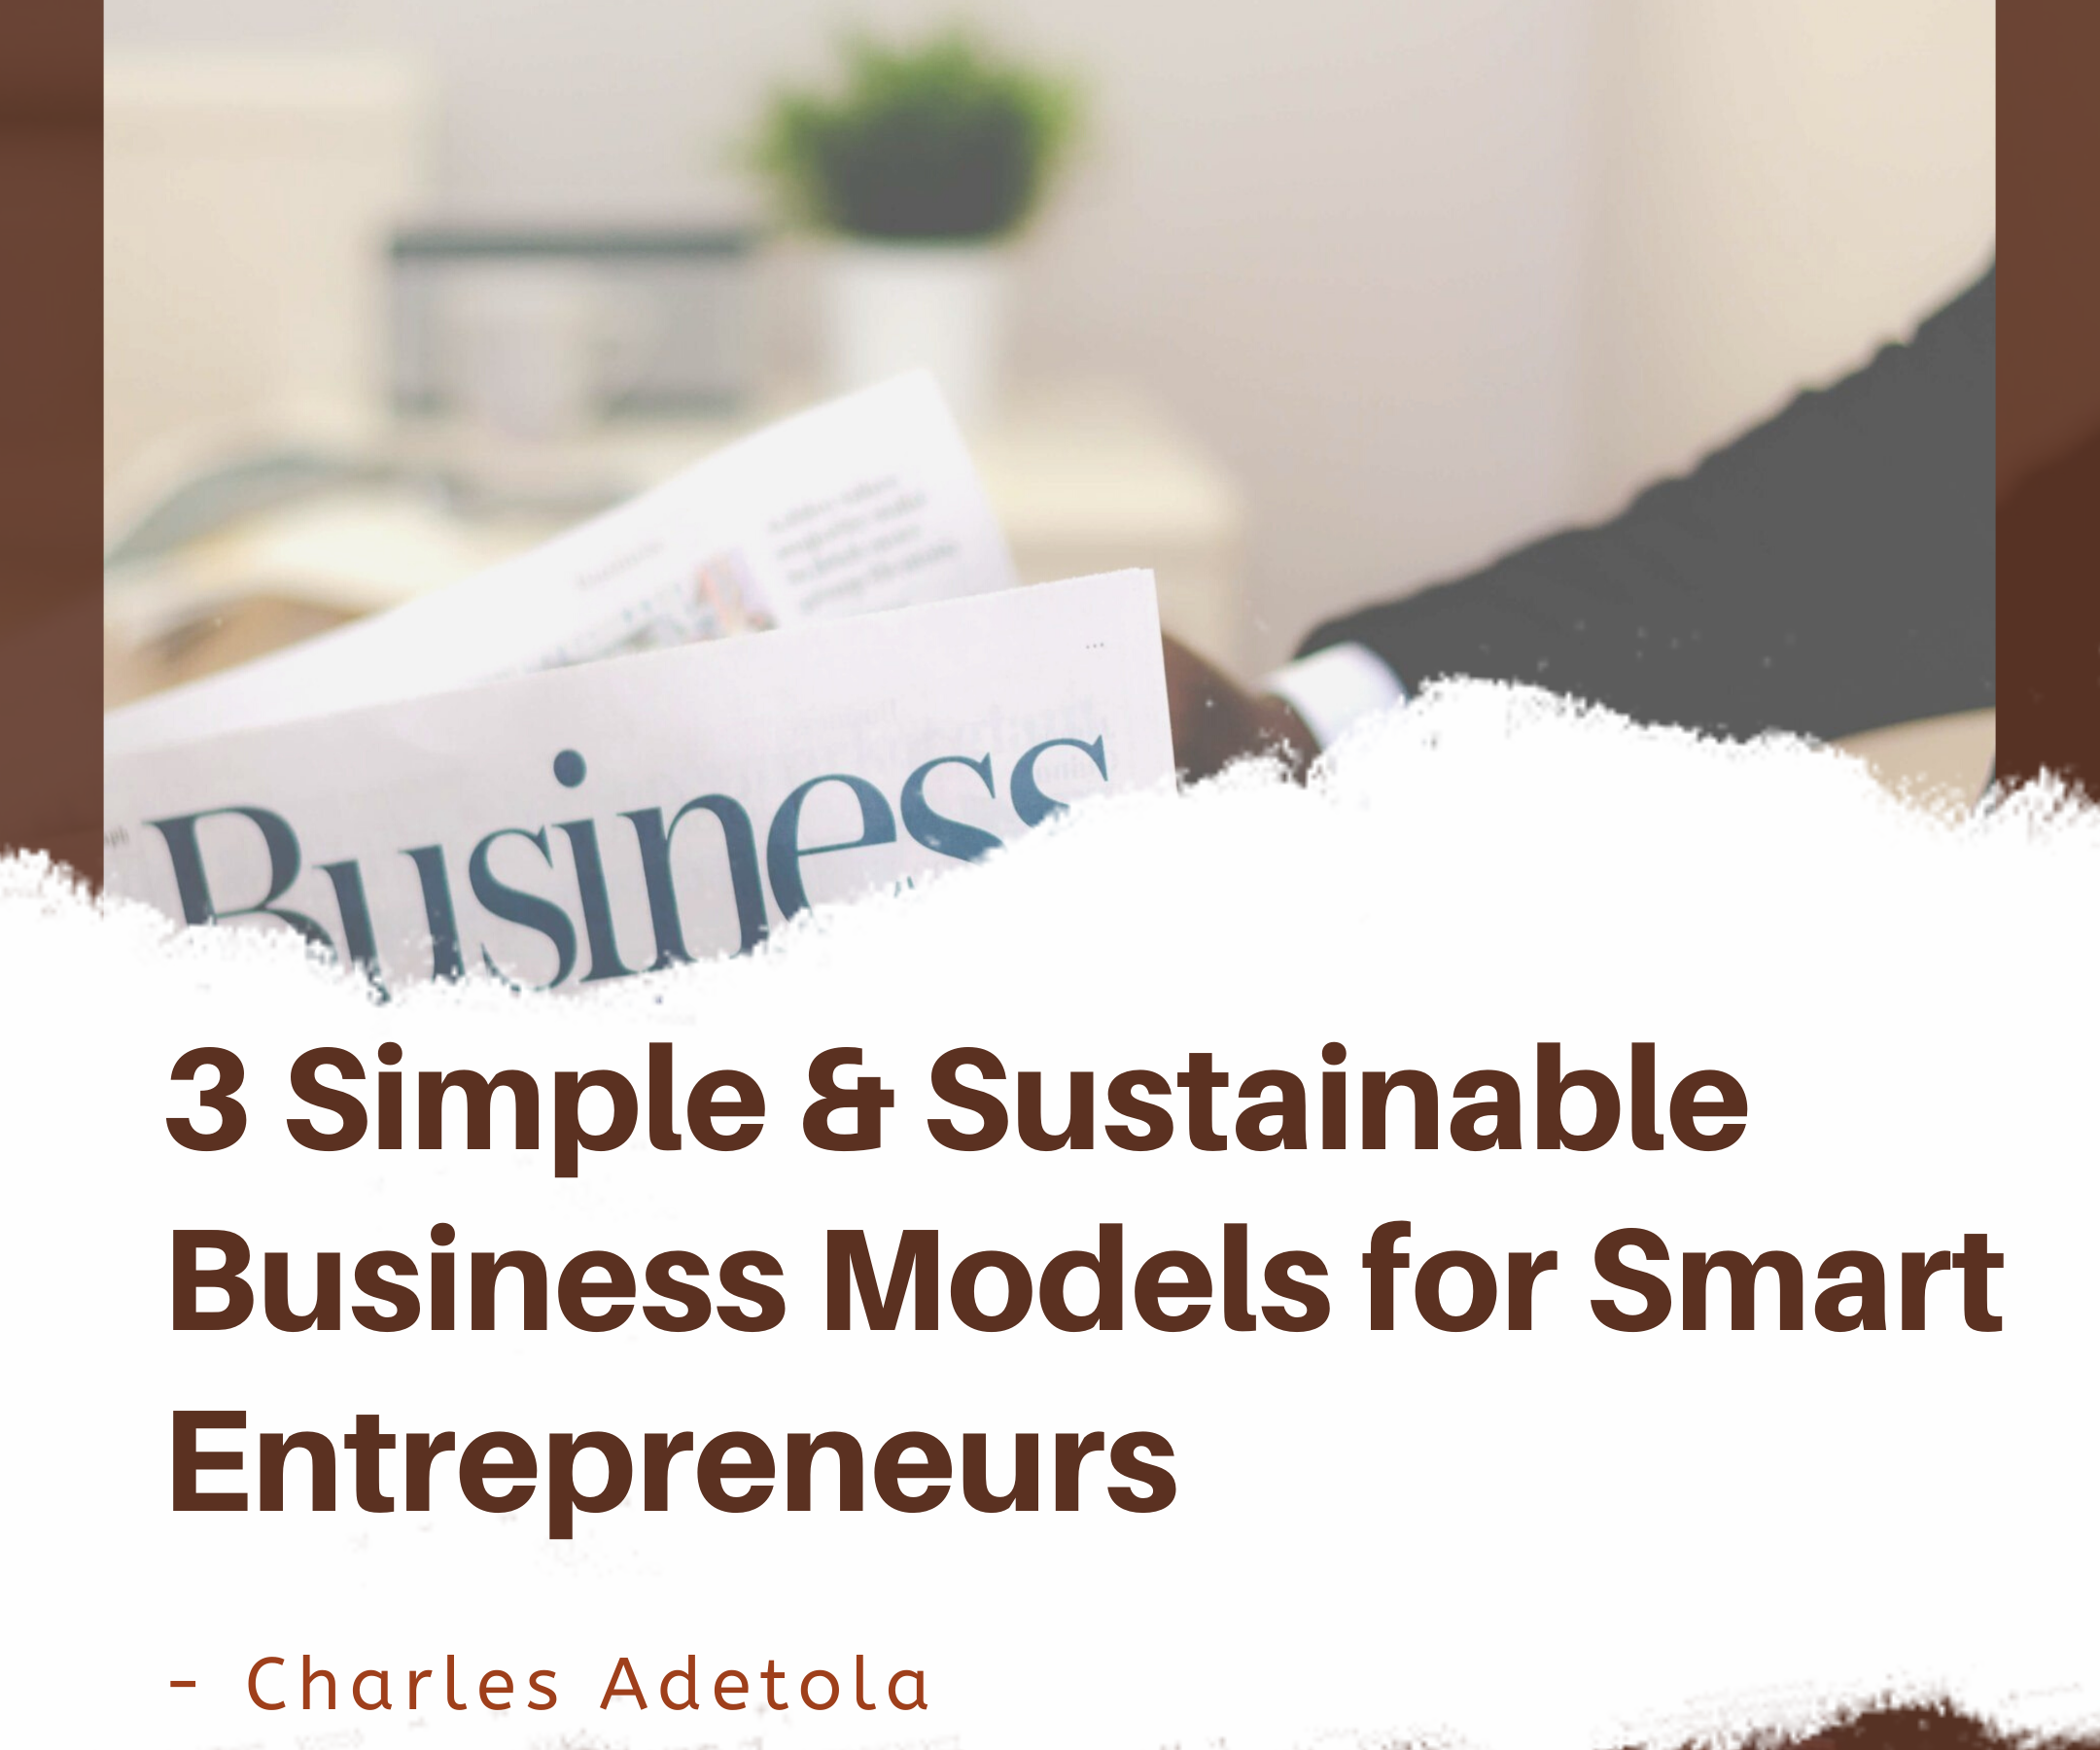 3 Simple & Sustainable Business Models for Smart Entrepreneurs - Free Product /Advertising - Freemium /Premium - Interdependent Product / Onetime- Recurrent